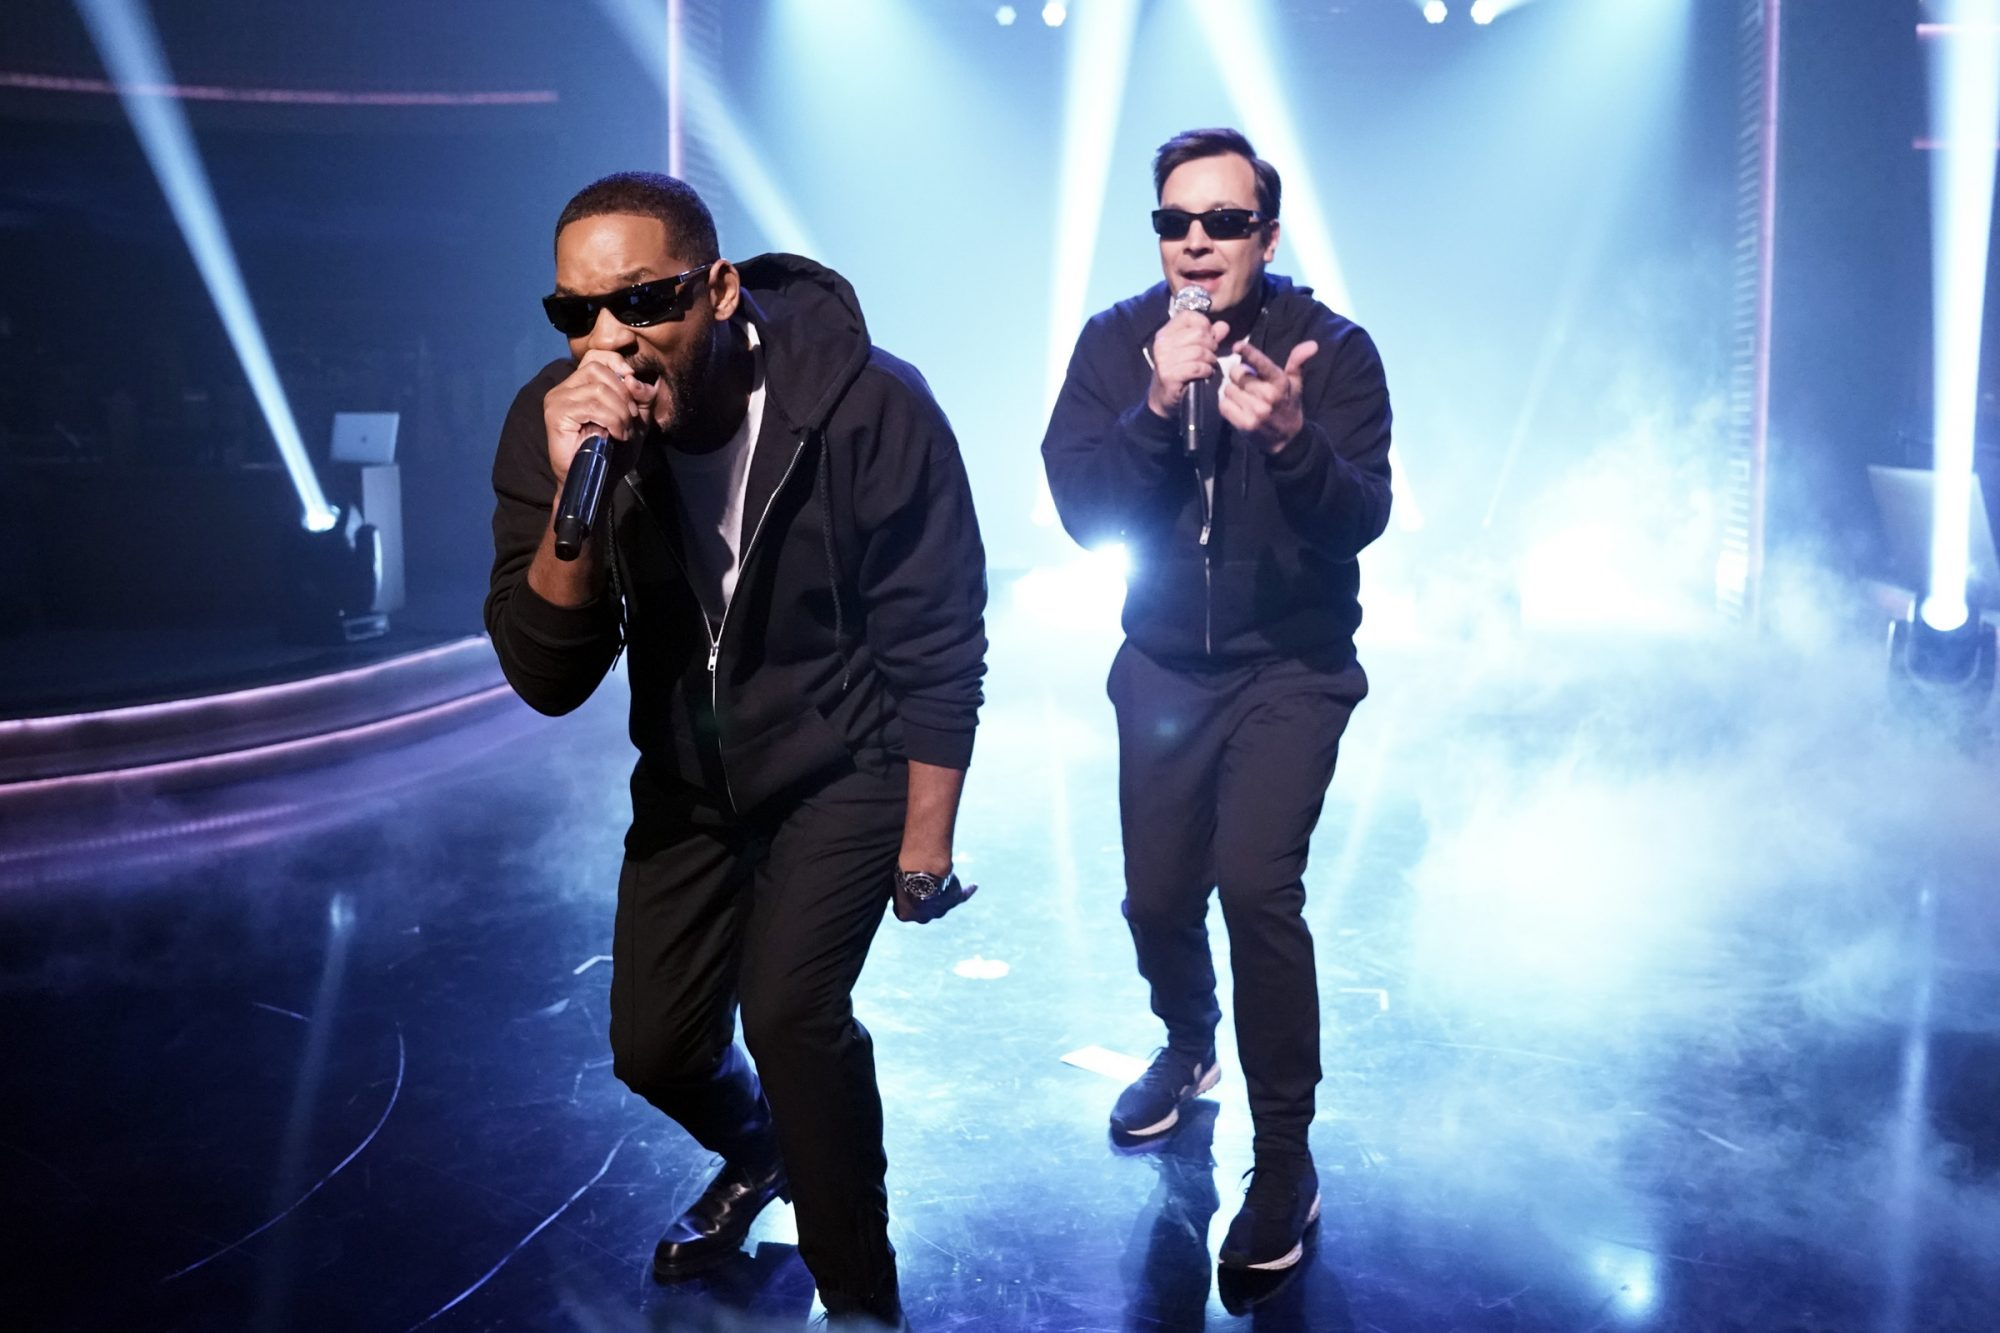 Will Smith and host Jimmy Fallon